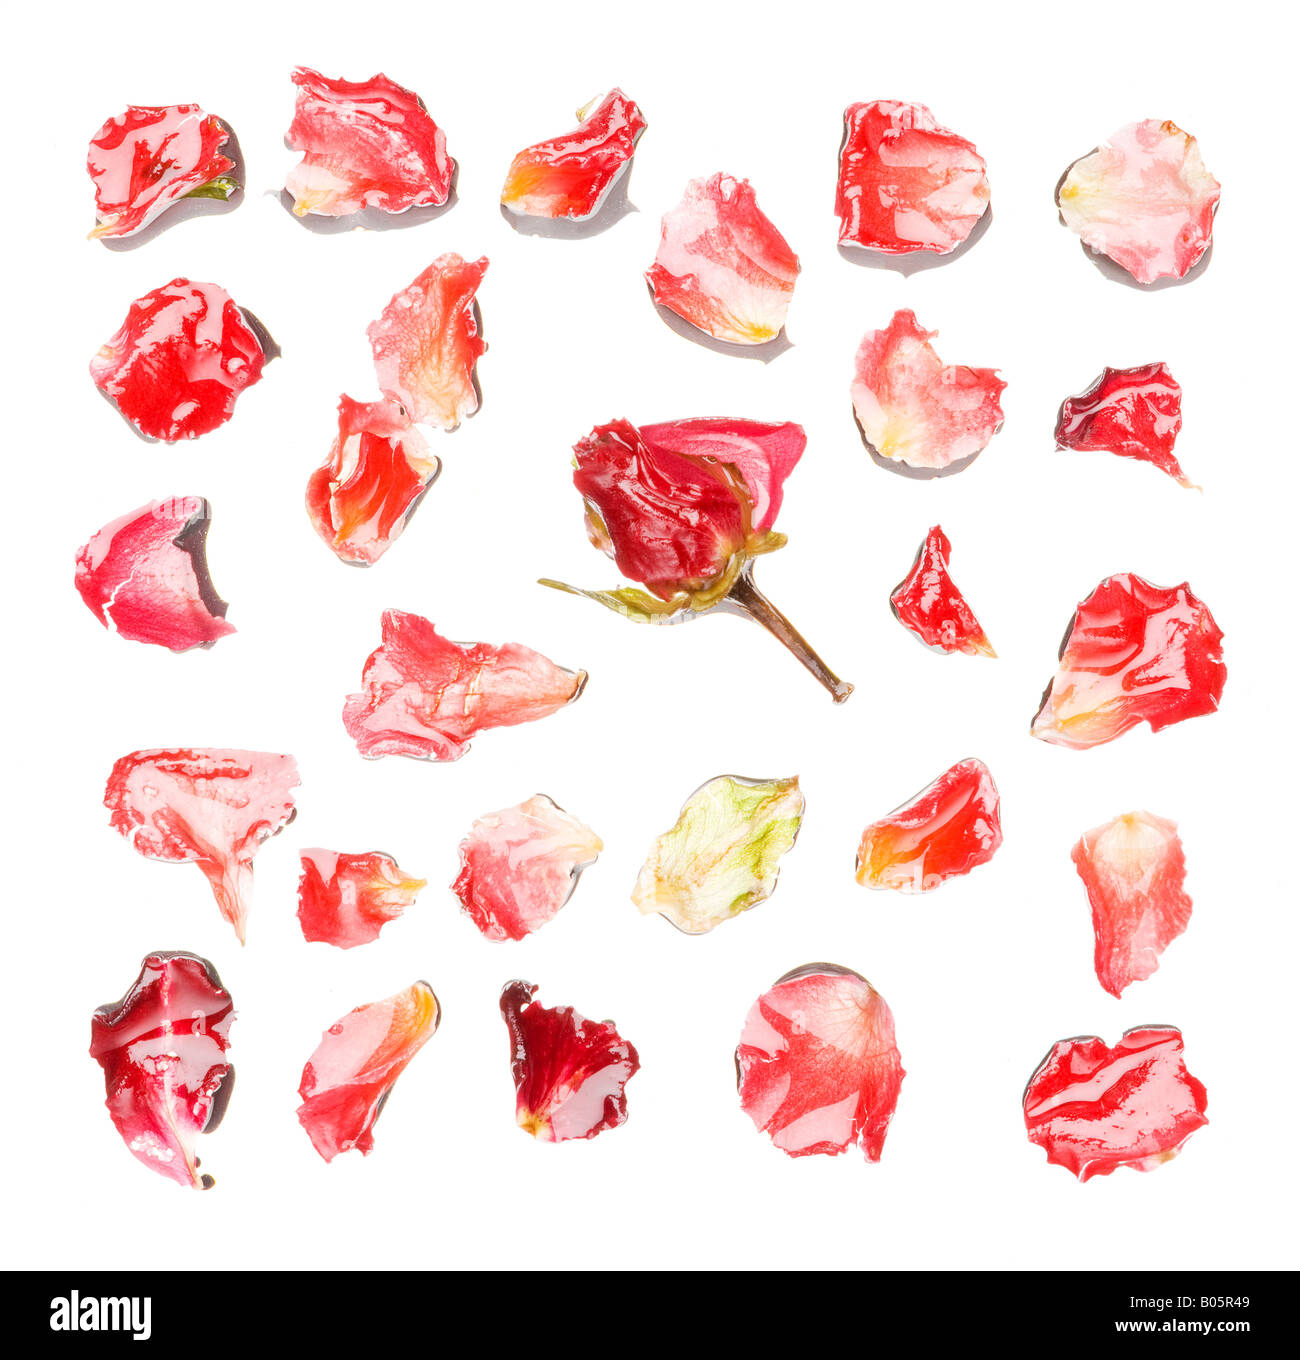 Full frame of rose petals - Stock Image